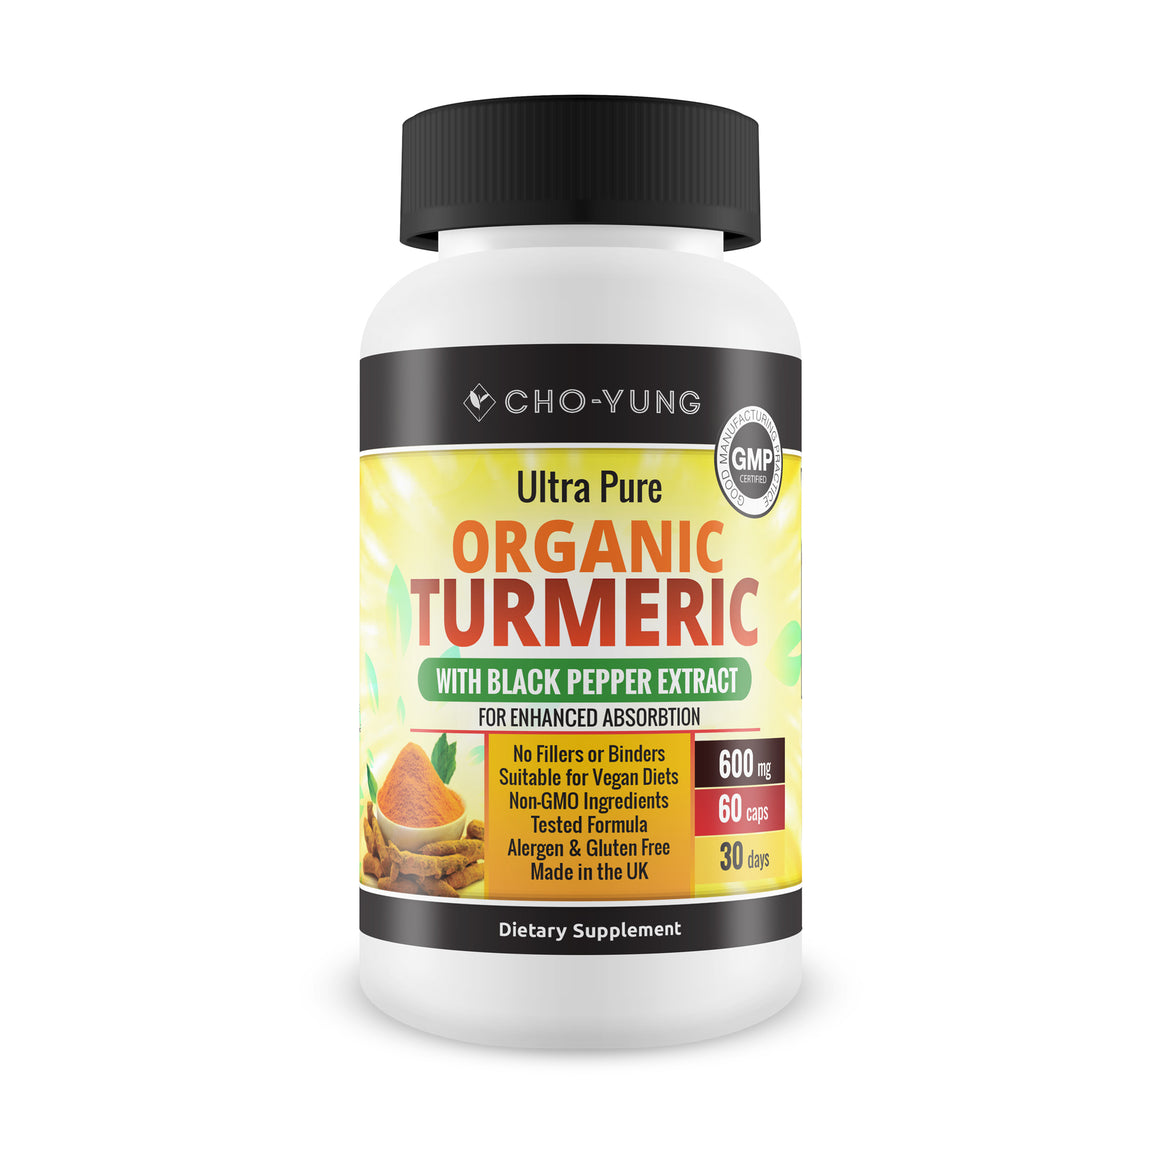 Cho-Yung Daily Organic Turmeric 95% Curcumin & Black Pepper Extract 500mg